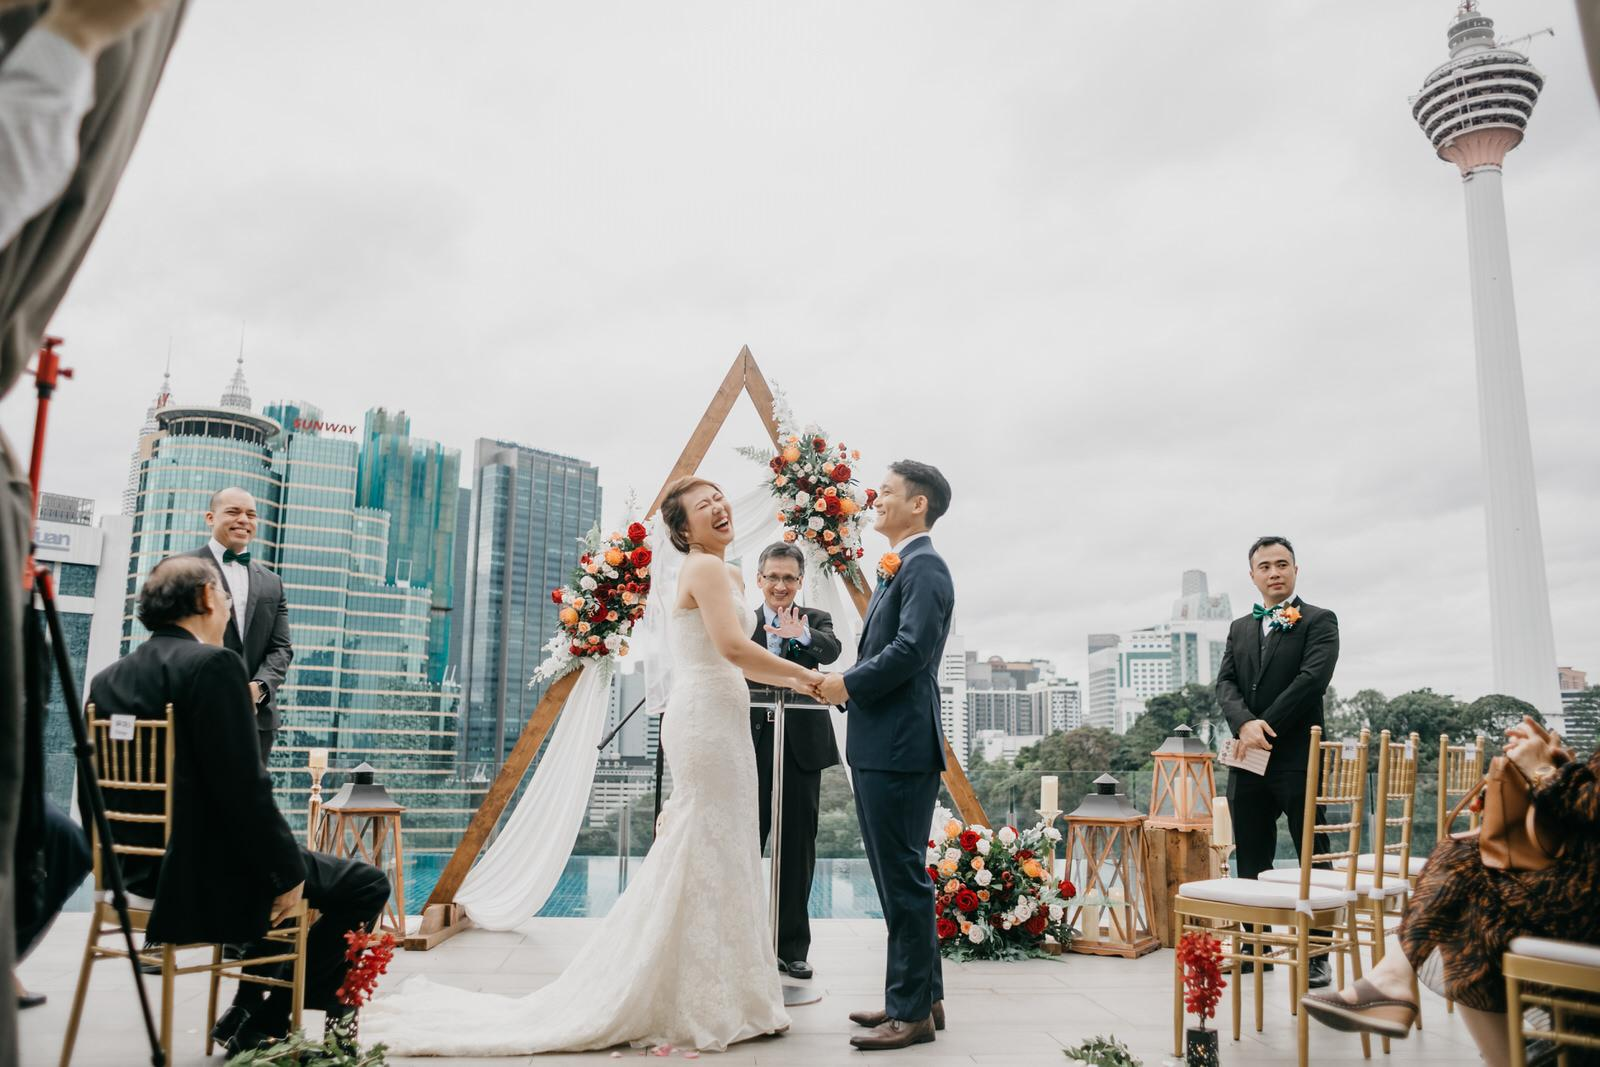 Vow Rings Exchange Boho Deco Rooftop Poolside Wedding at Hotel Stripes Kuala Lumpur MCO2.0 Cliff Choong Photography Malaysia Covid19 ROM